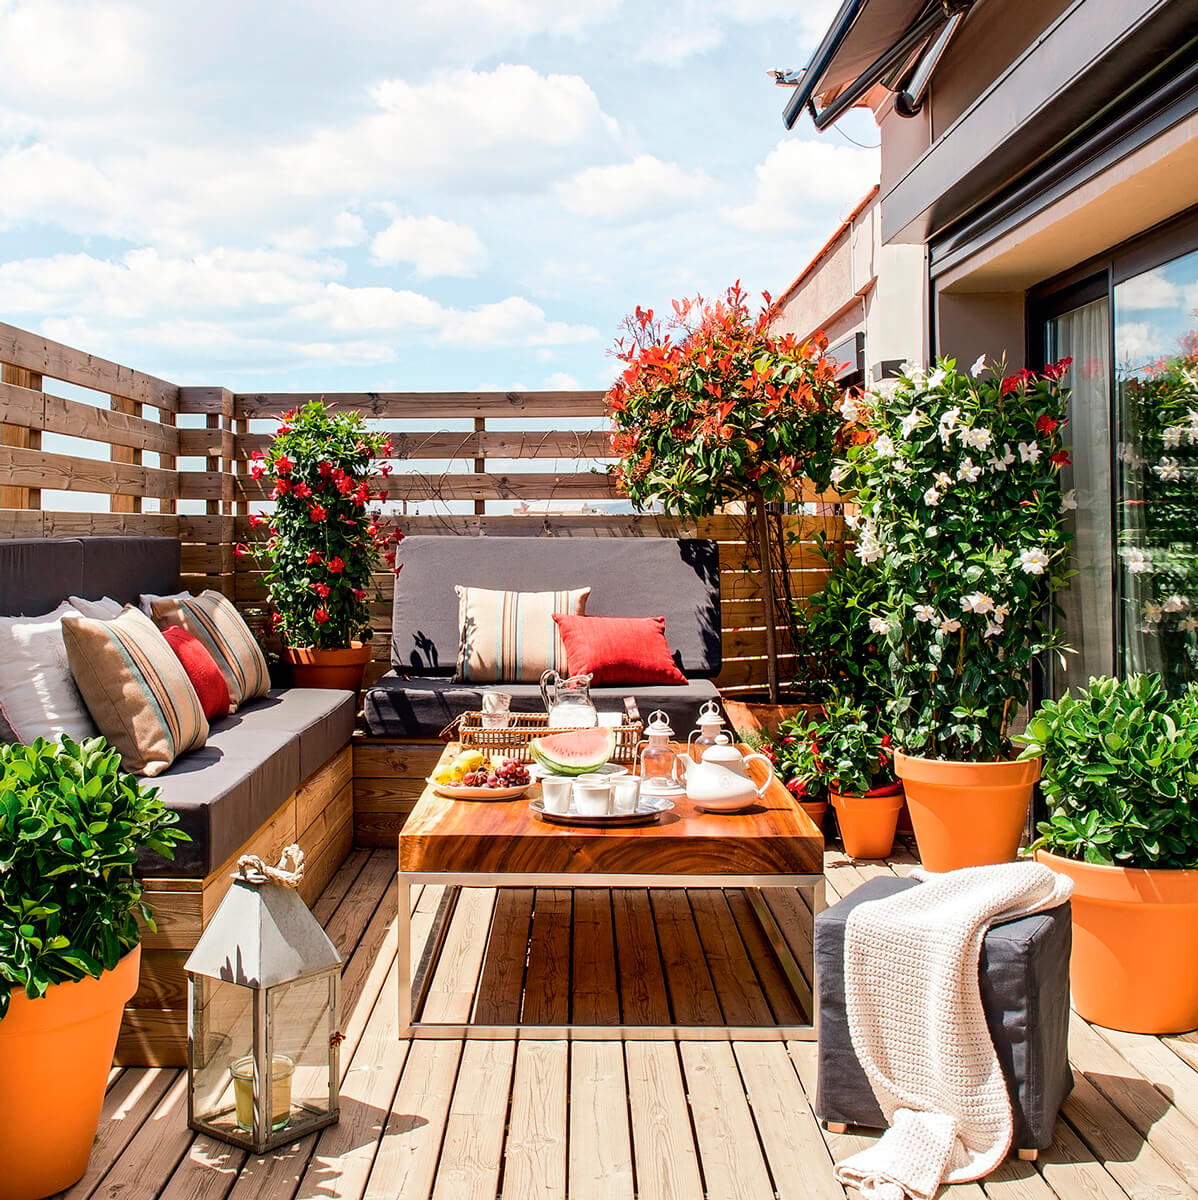 10 ideas para decorar terrazas y balcones handfie diy - Como decorar mi terraza ...